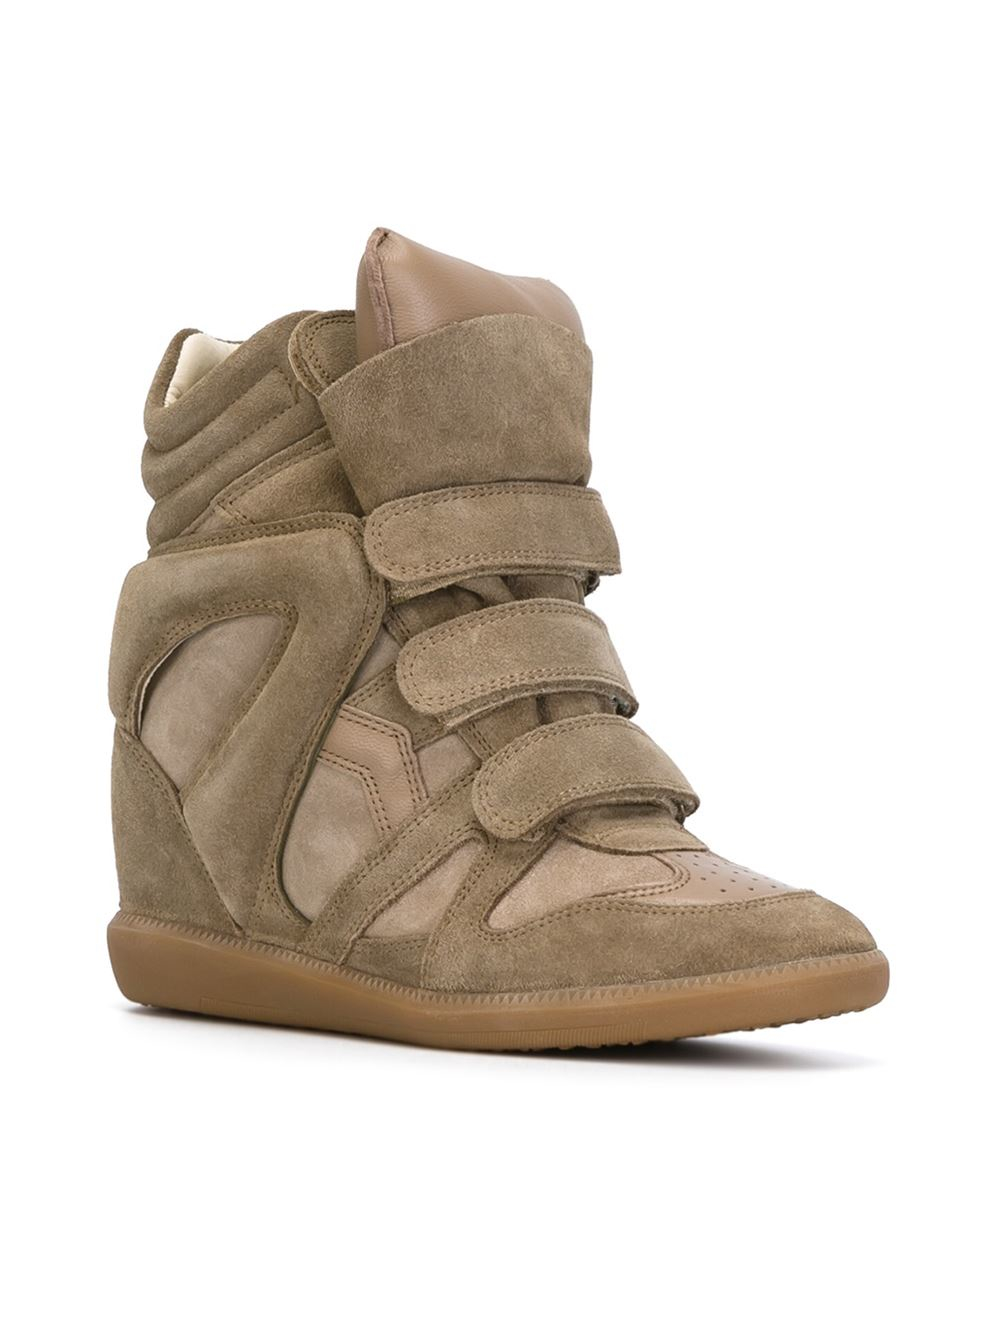 isabel marant toile 39 beckett 39 hi top sneakers in beige green lyst. Black Bedroom Furniture Sets. Home Design Ideas